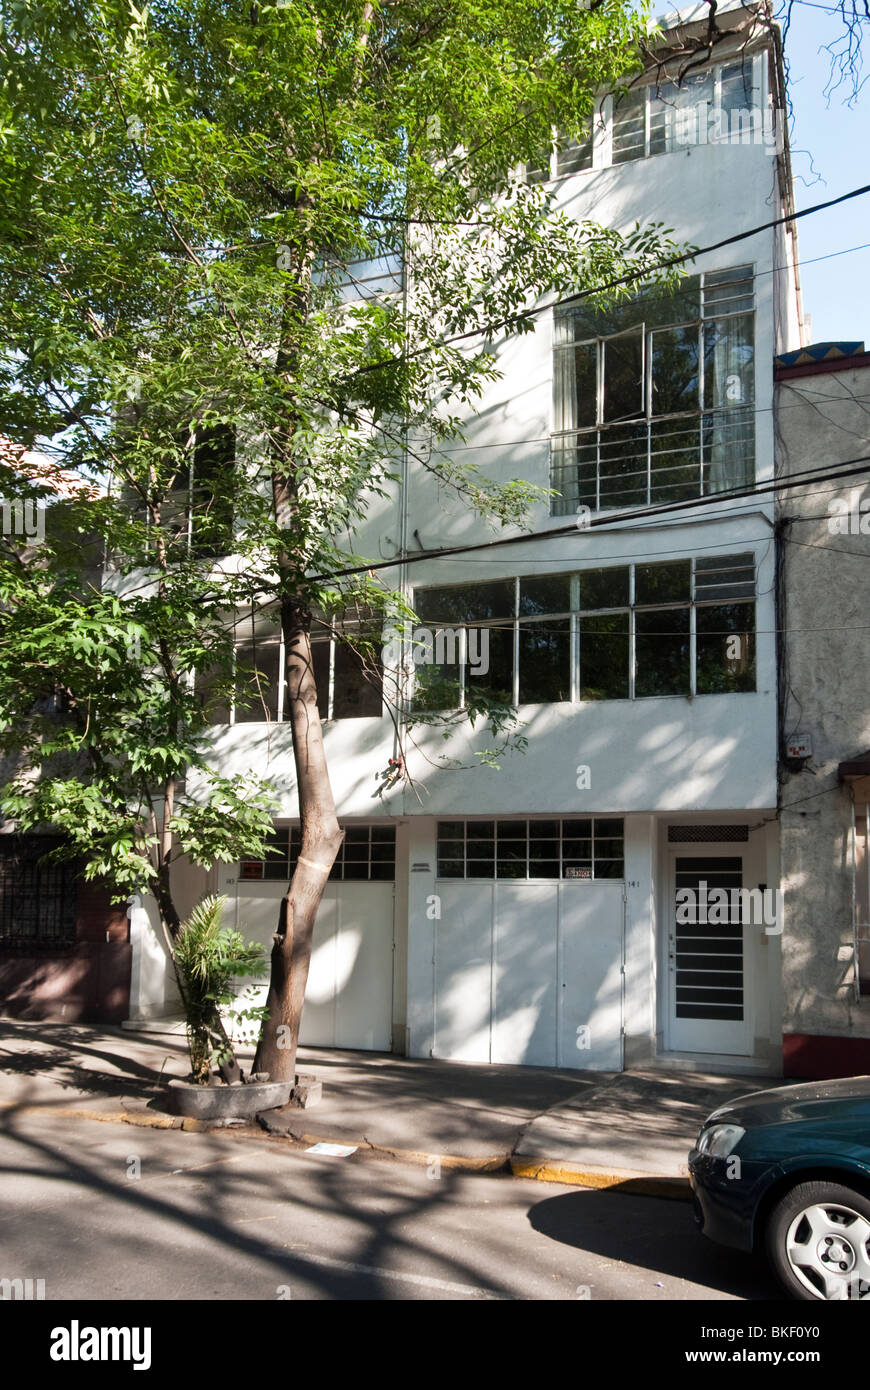 Early Modernist Duplex Residential Building By Famous Mexican Architect Luis Barragan In Condesa District Mexico City